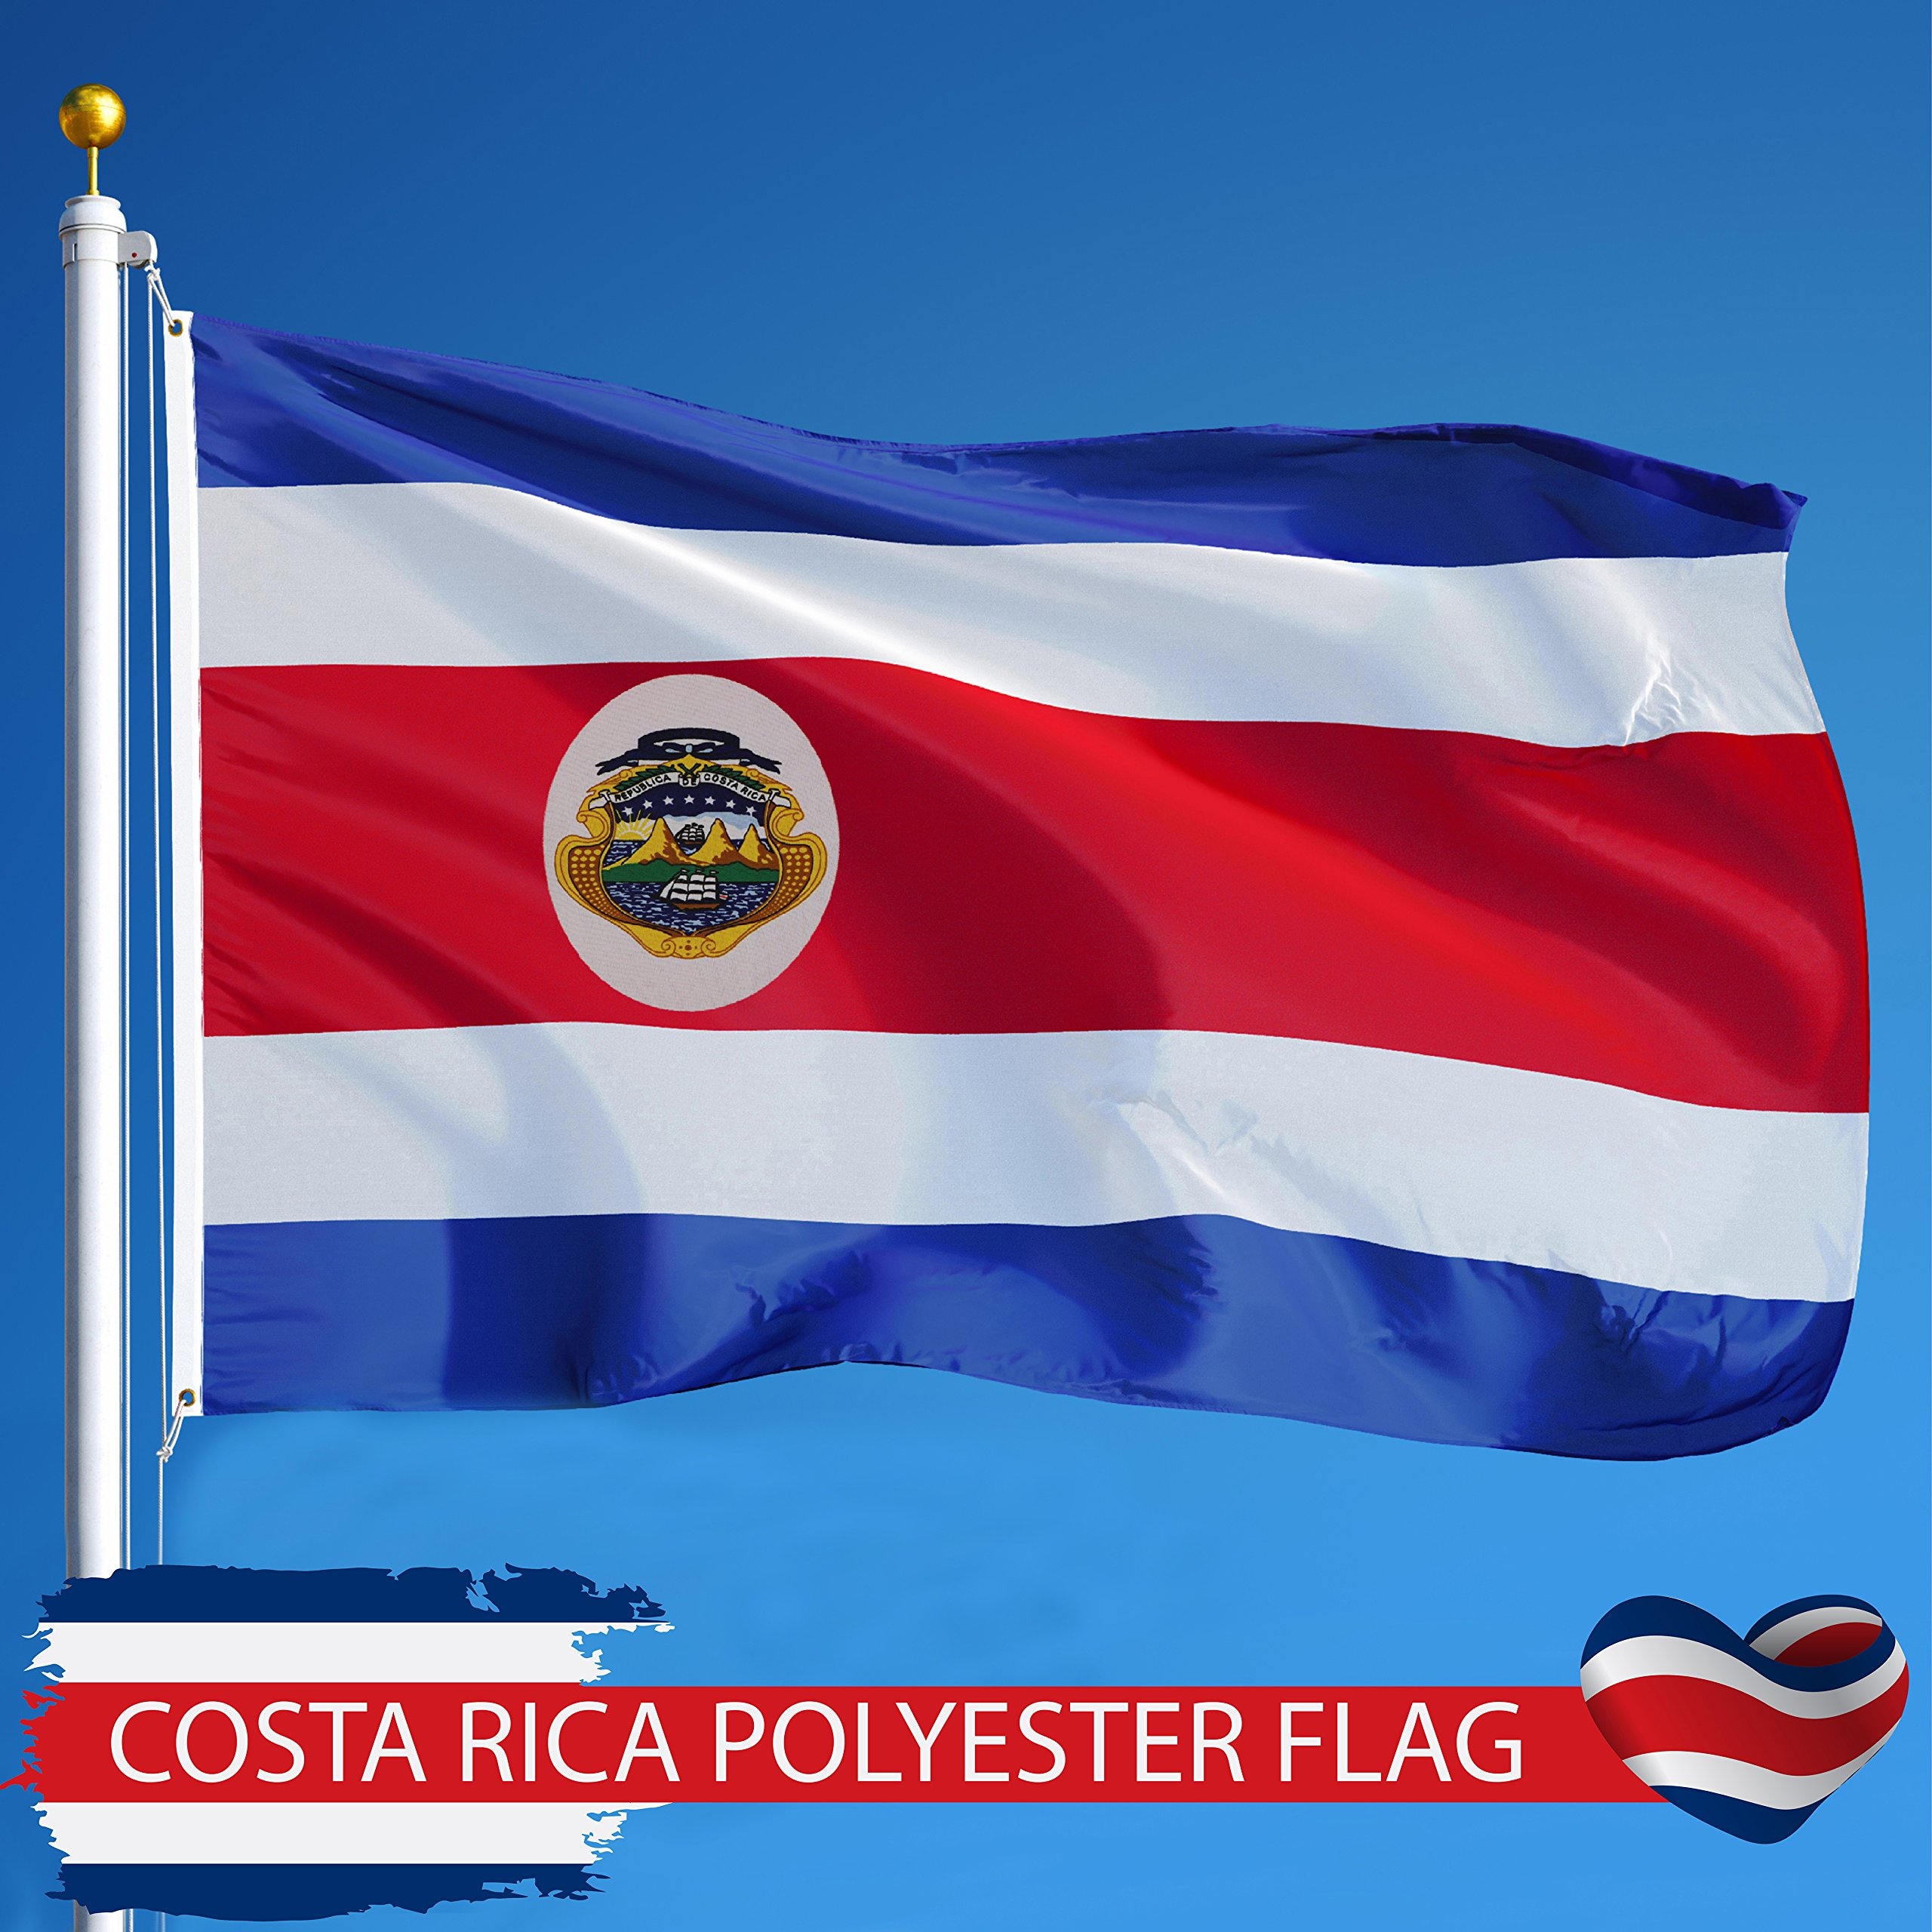 G128 - Costa Rica Costa Rican Flag 3x5 ft Printed Brass Grommets 150D Quality Polyester Flag Indoor/Outdoor - Much Thicker and More Durable than 100D and 75D Polyester